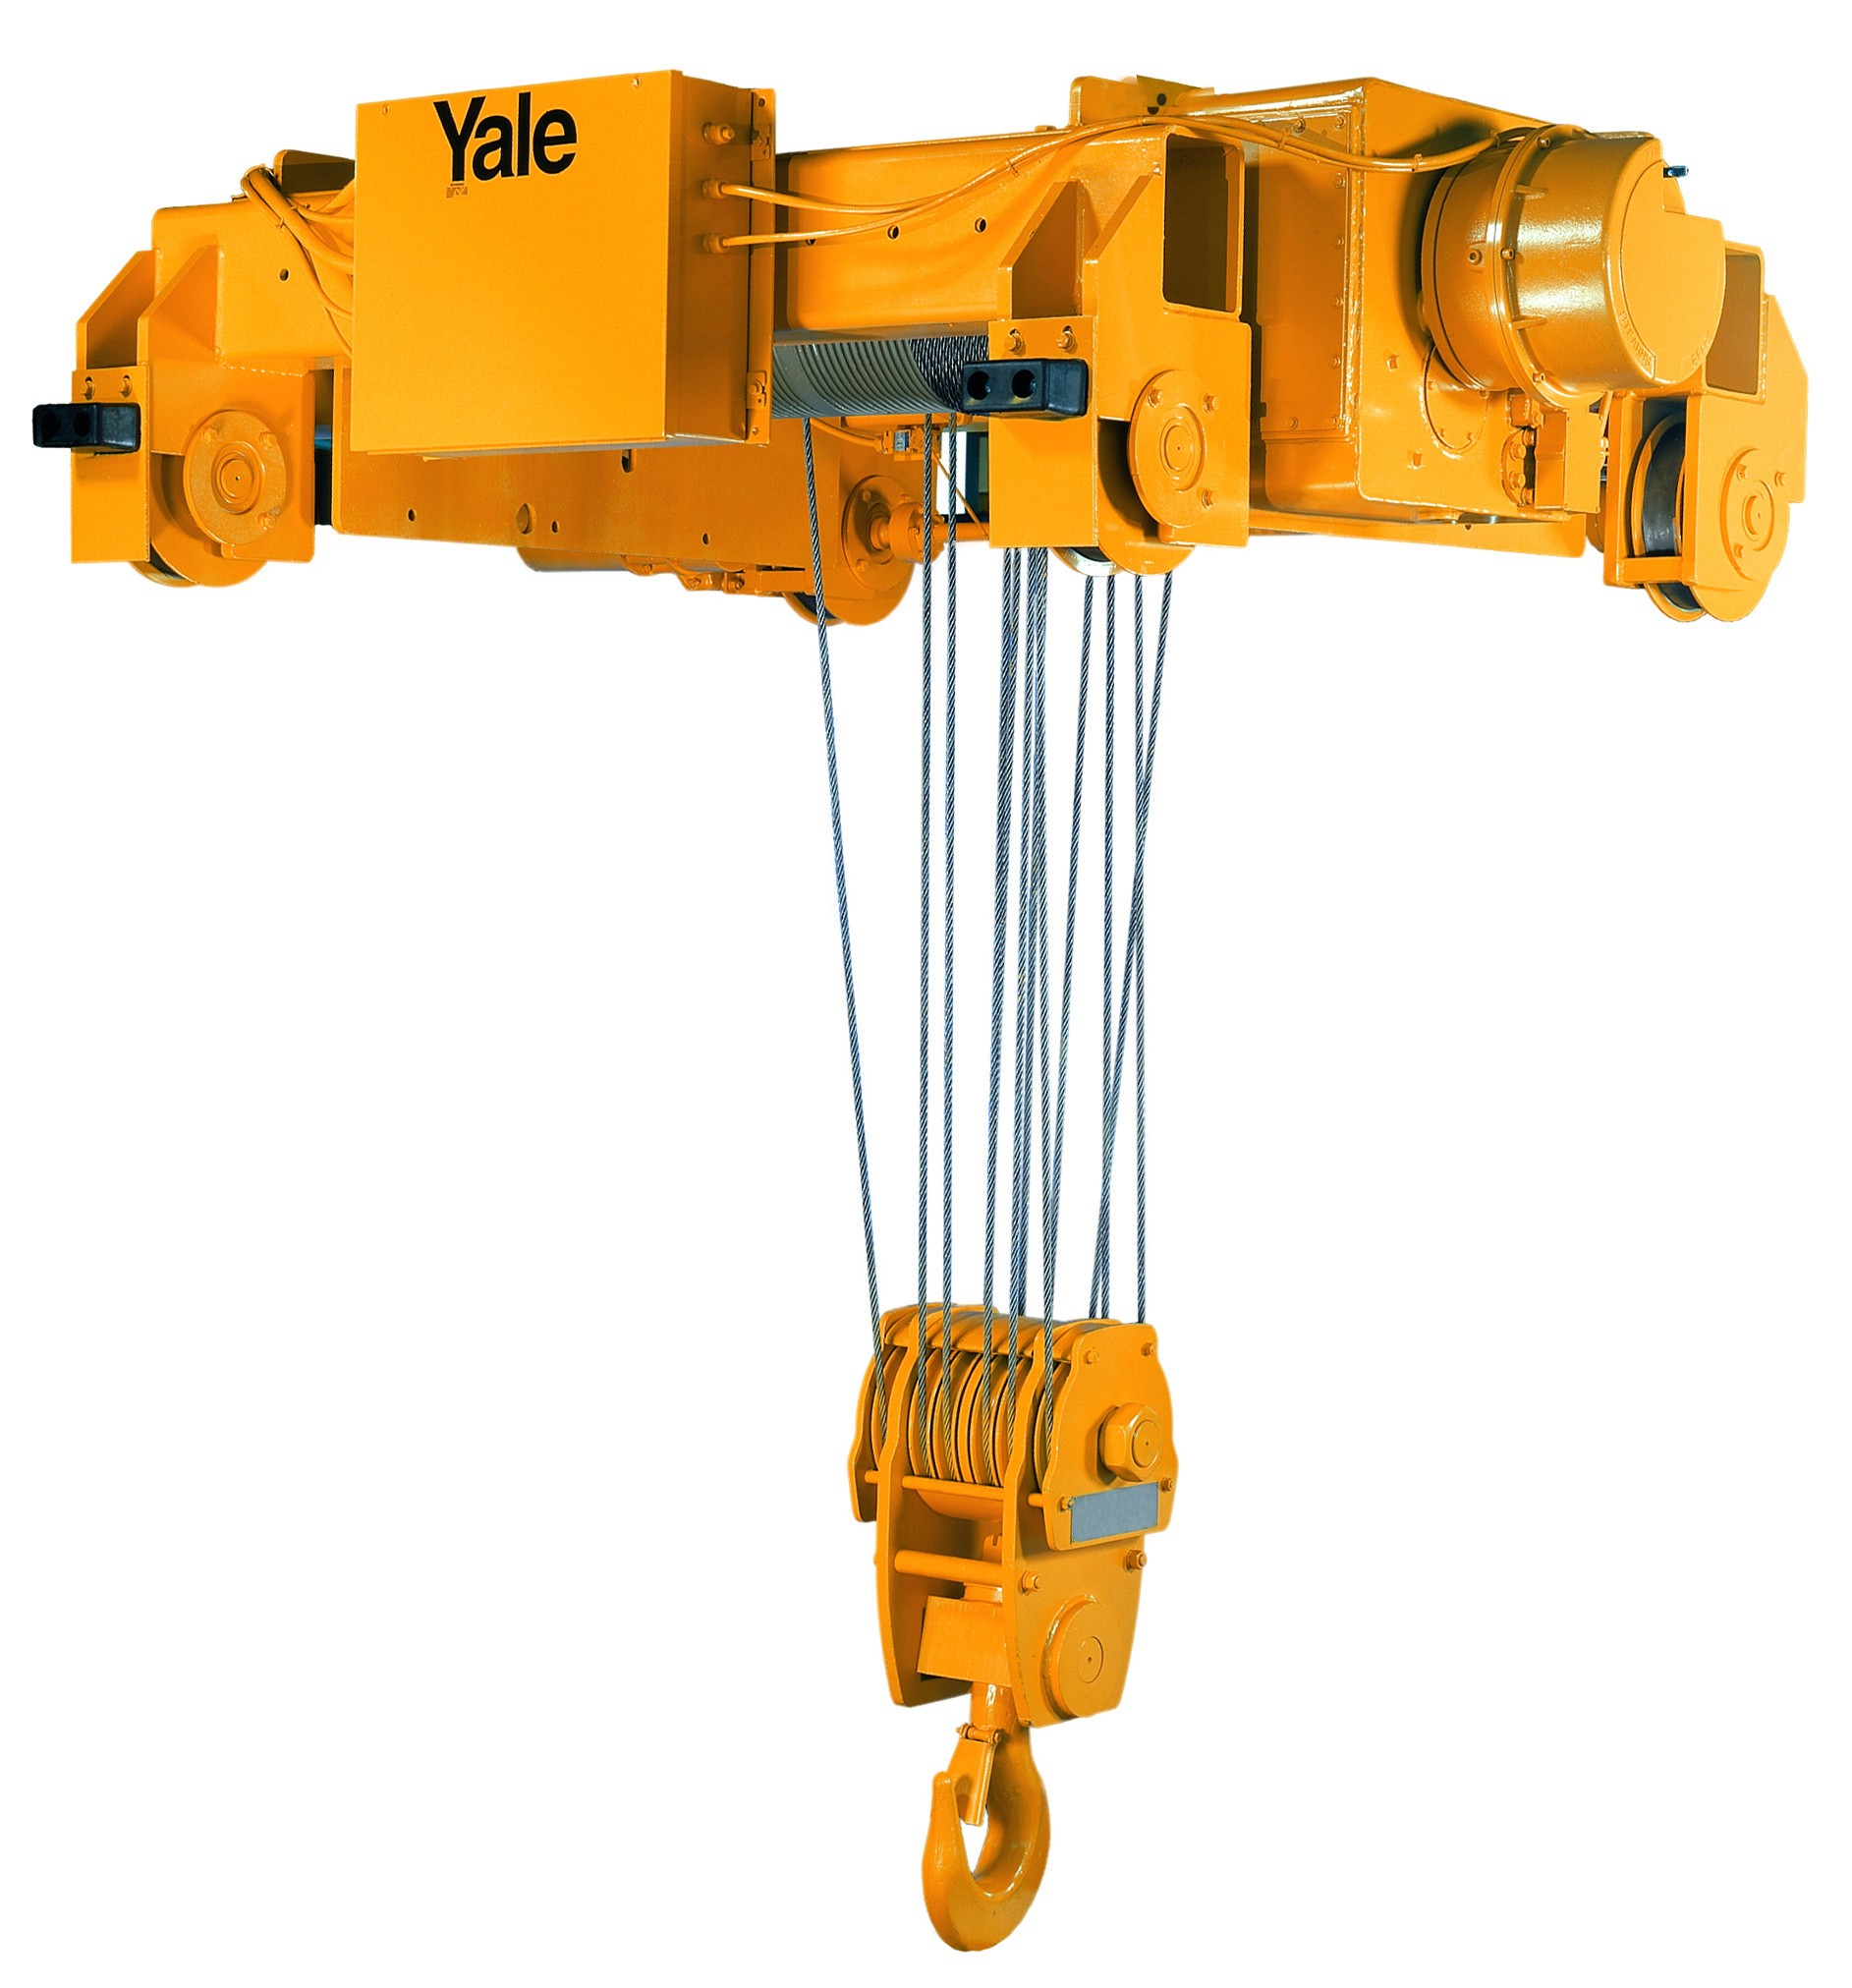 YALE - Cable King 25 Ton Electric Wire Rope Hoist (18fpm & 104' Lift Single Reeve)